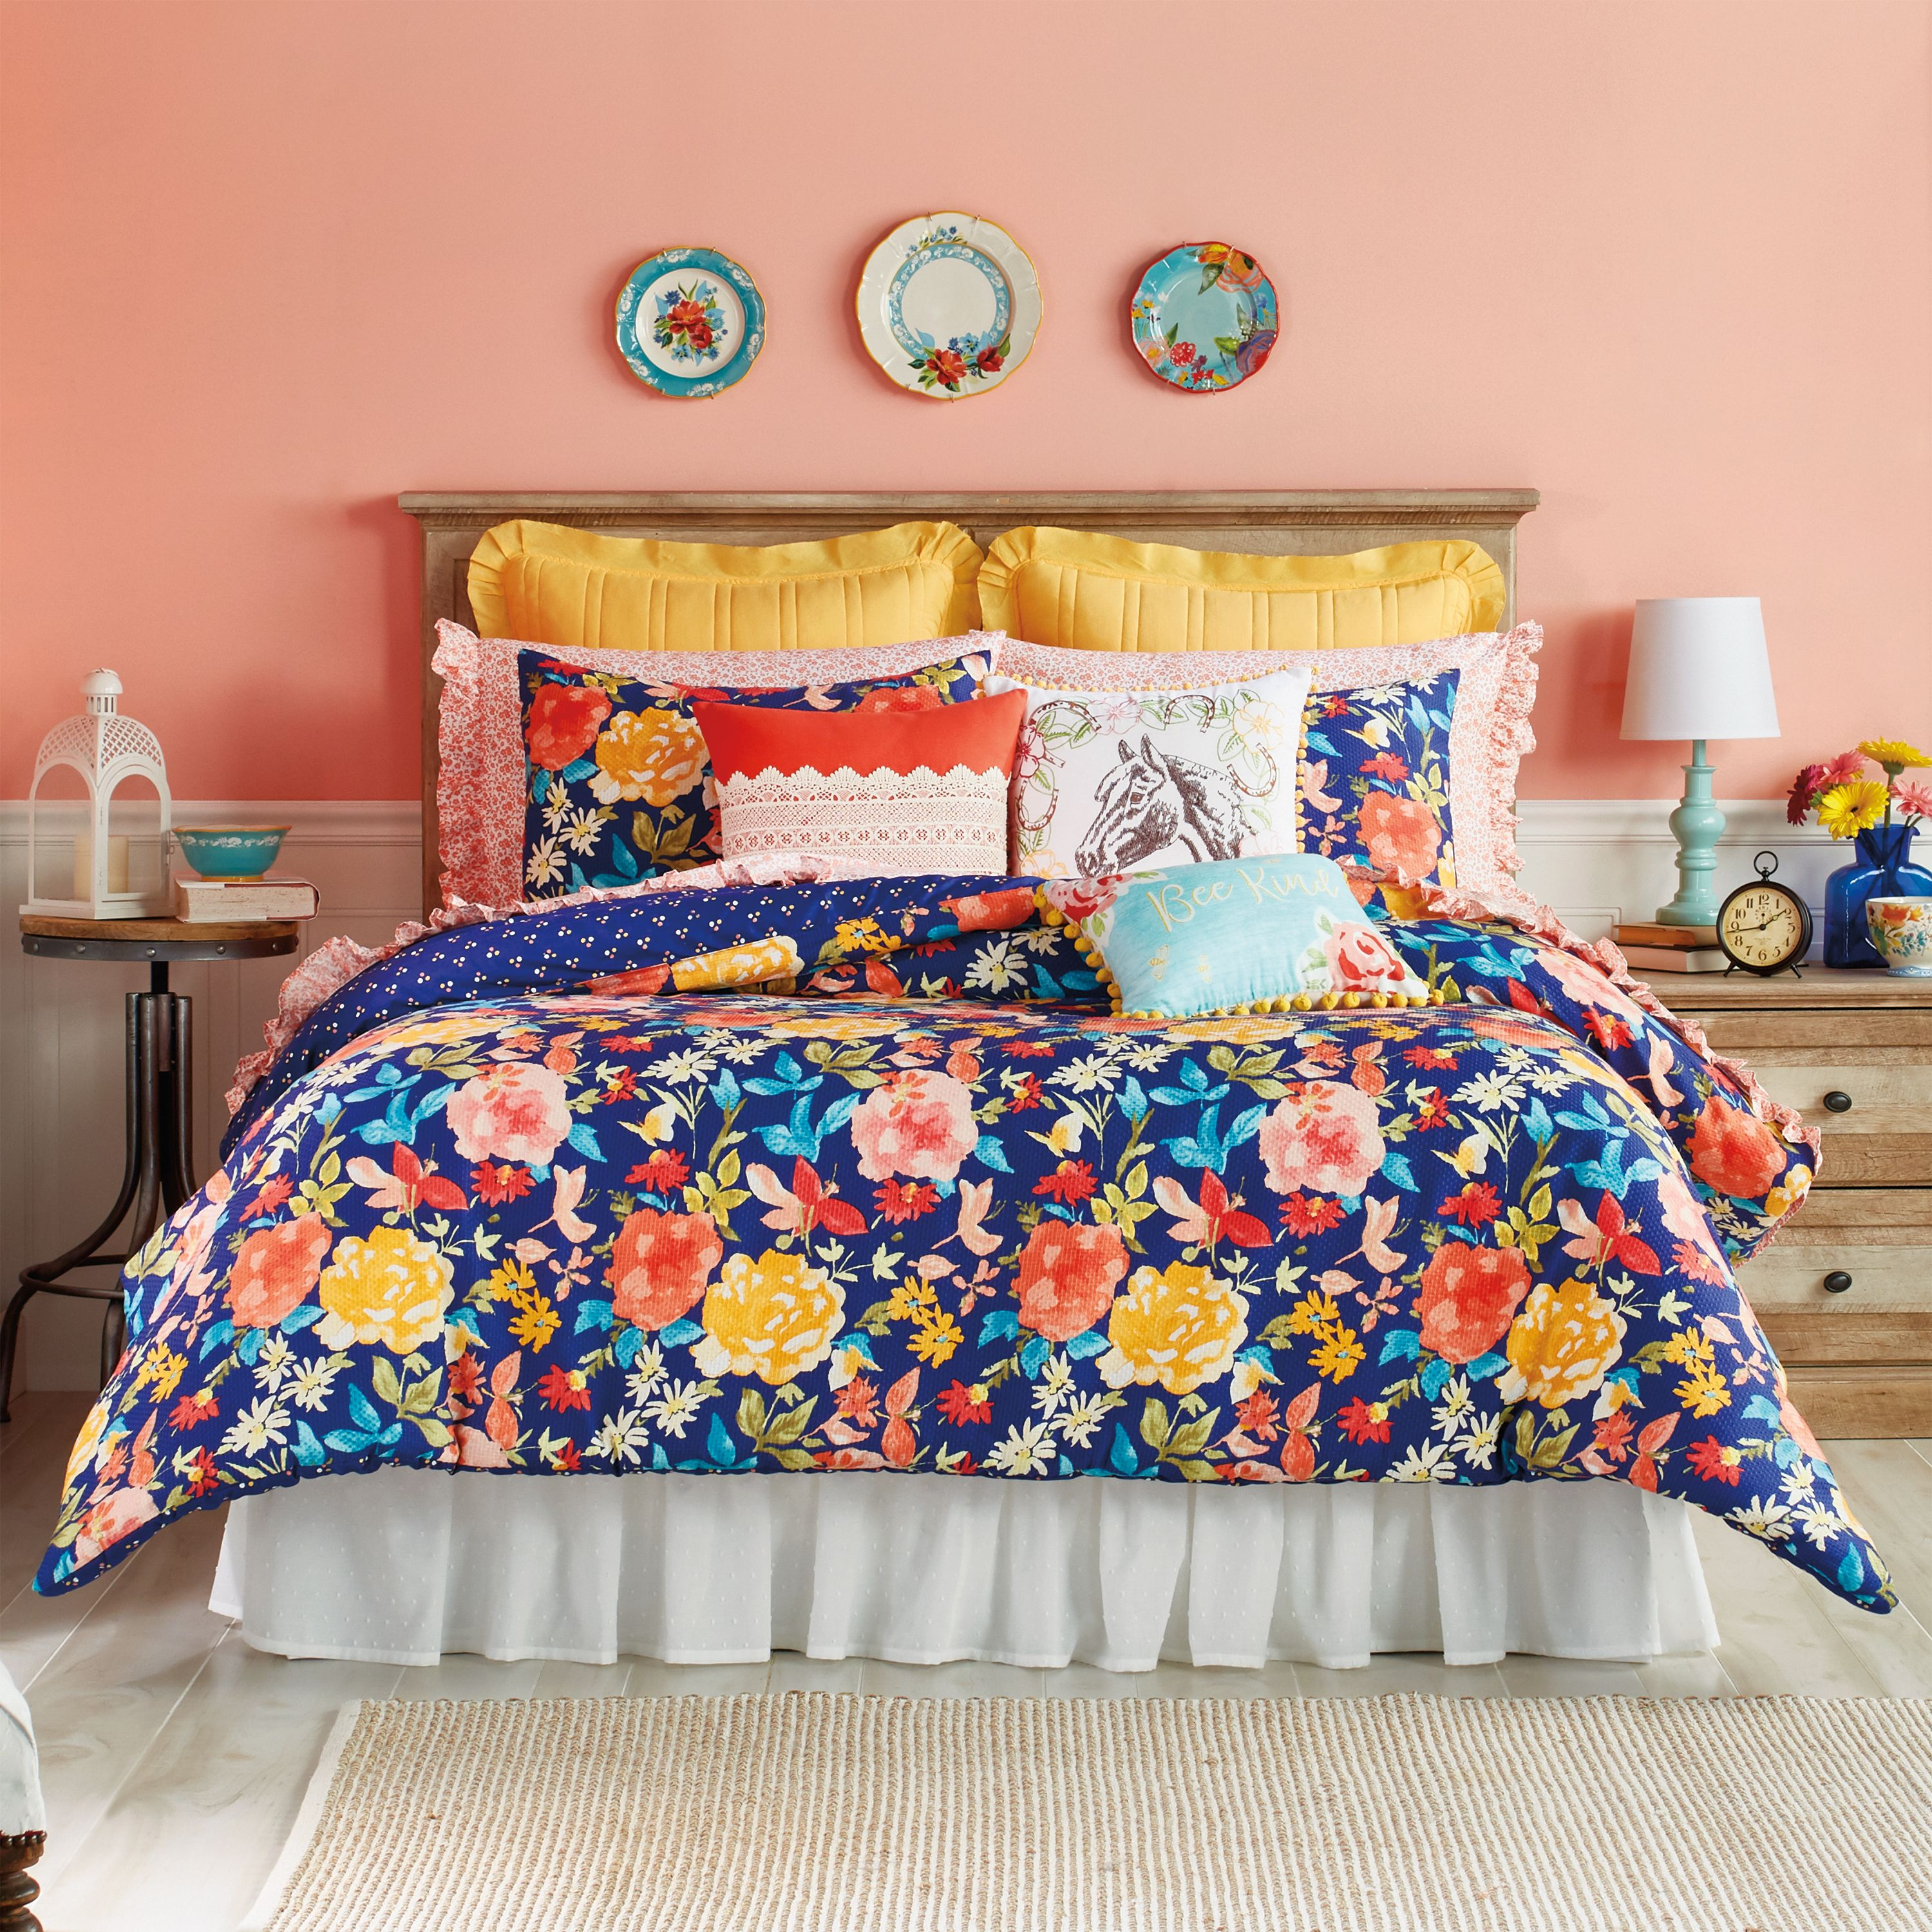 The Pioneer Woman Fiona Floral Comforter   Walmart.com in 2021   Floral comforter, Woman bedroom ...